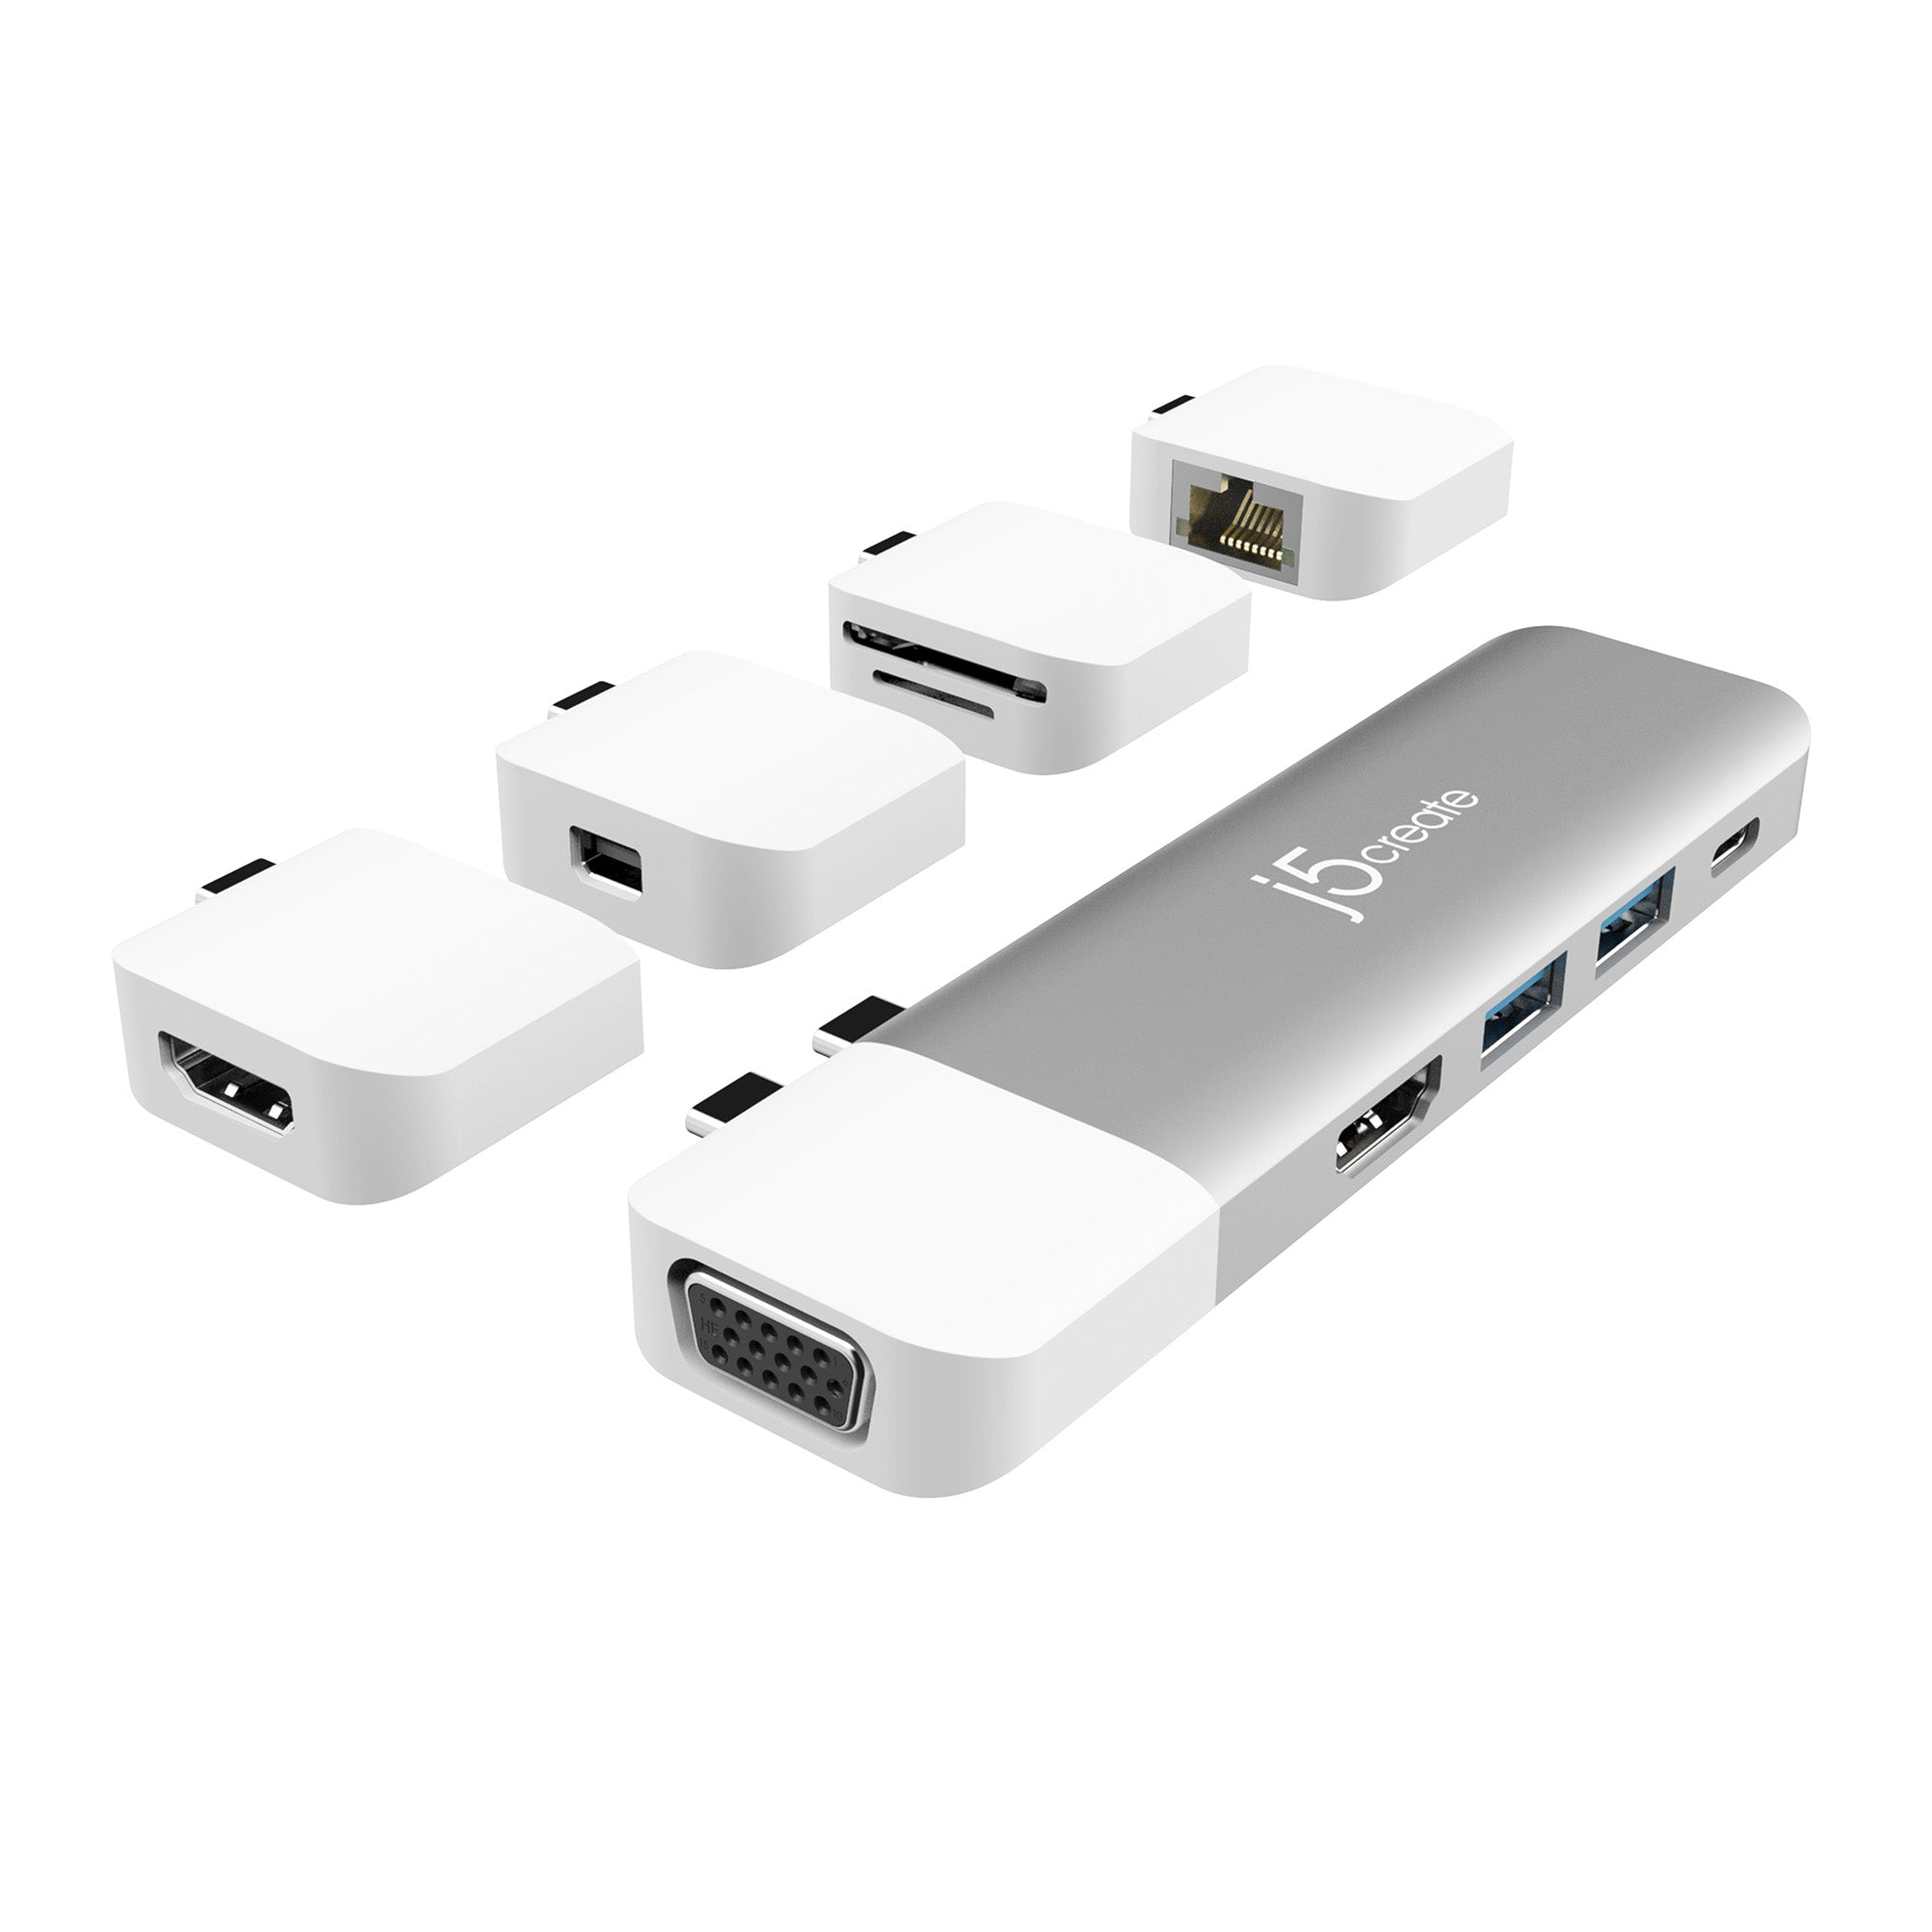 JCD389 ULTRADRIVE Kit USB-C Multi-Display Modular Dock